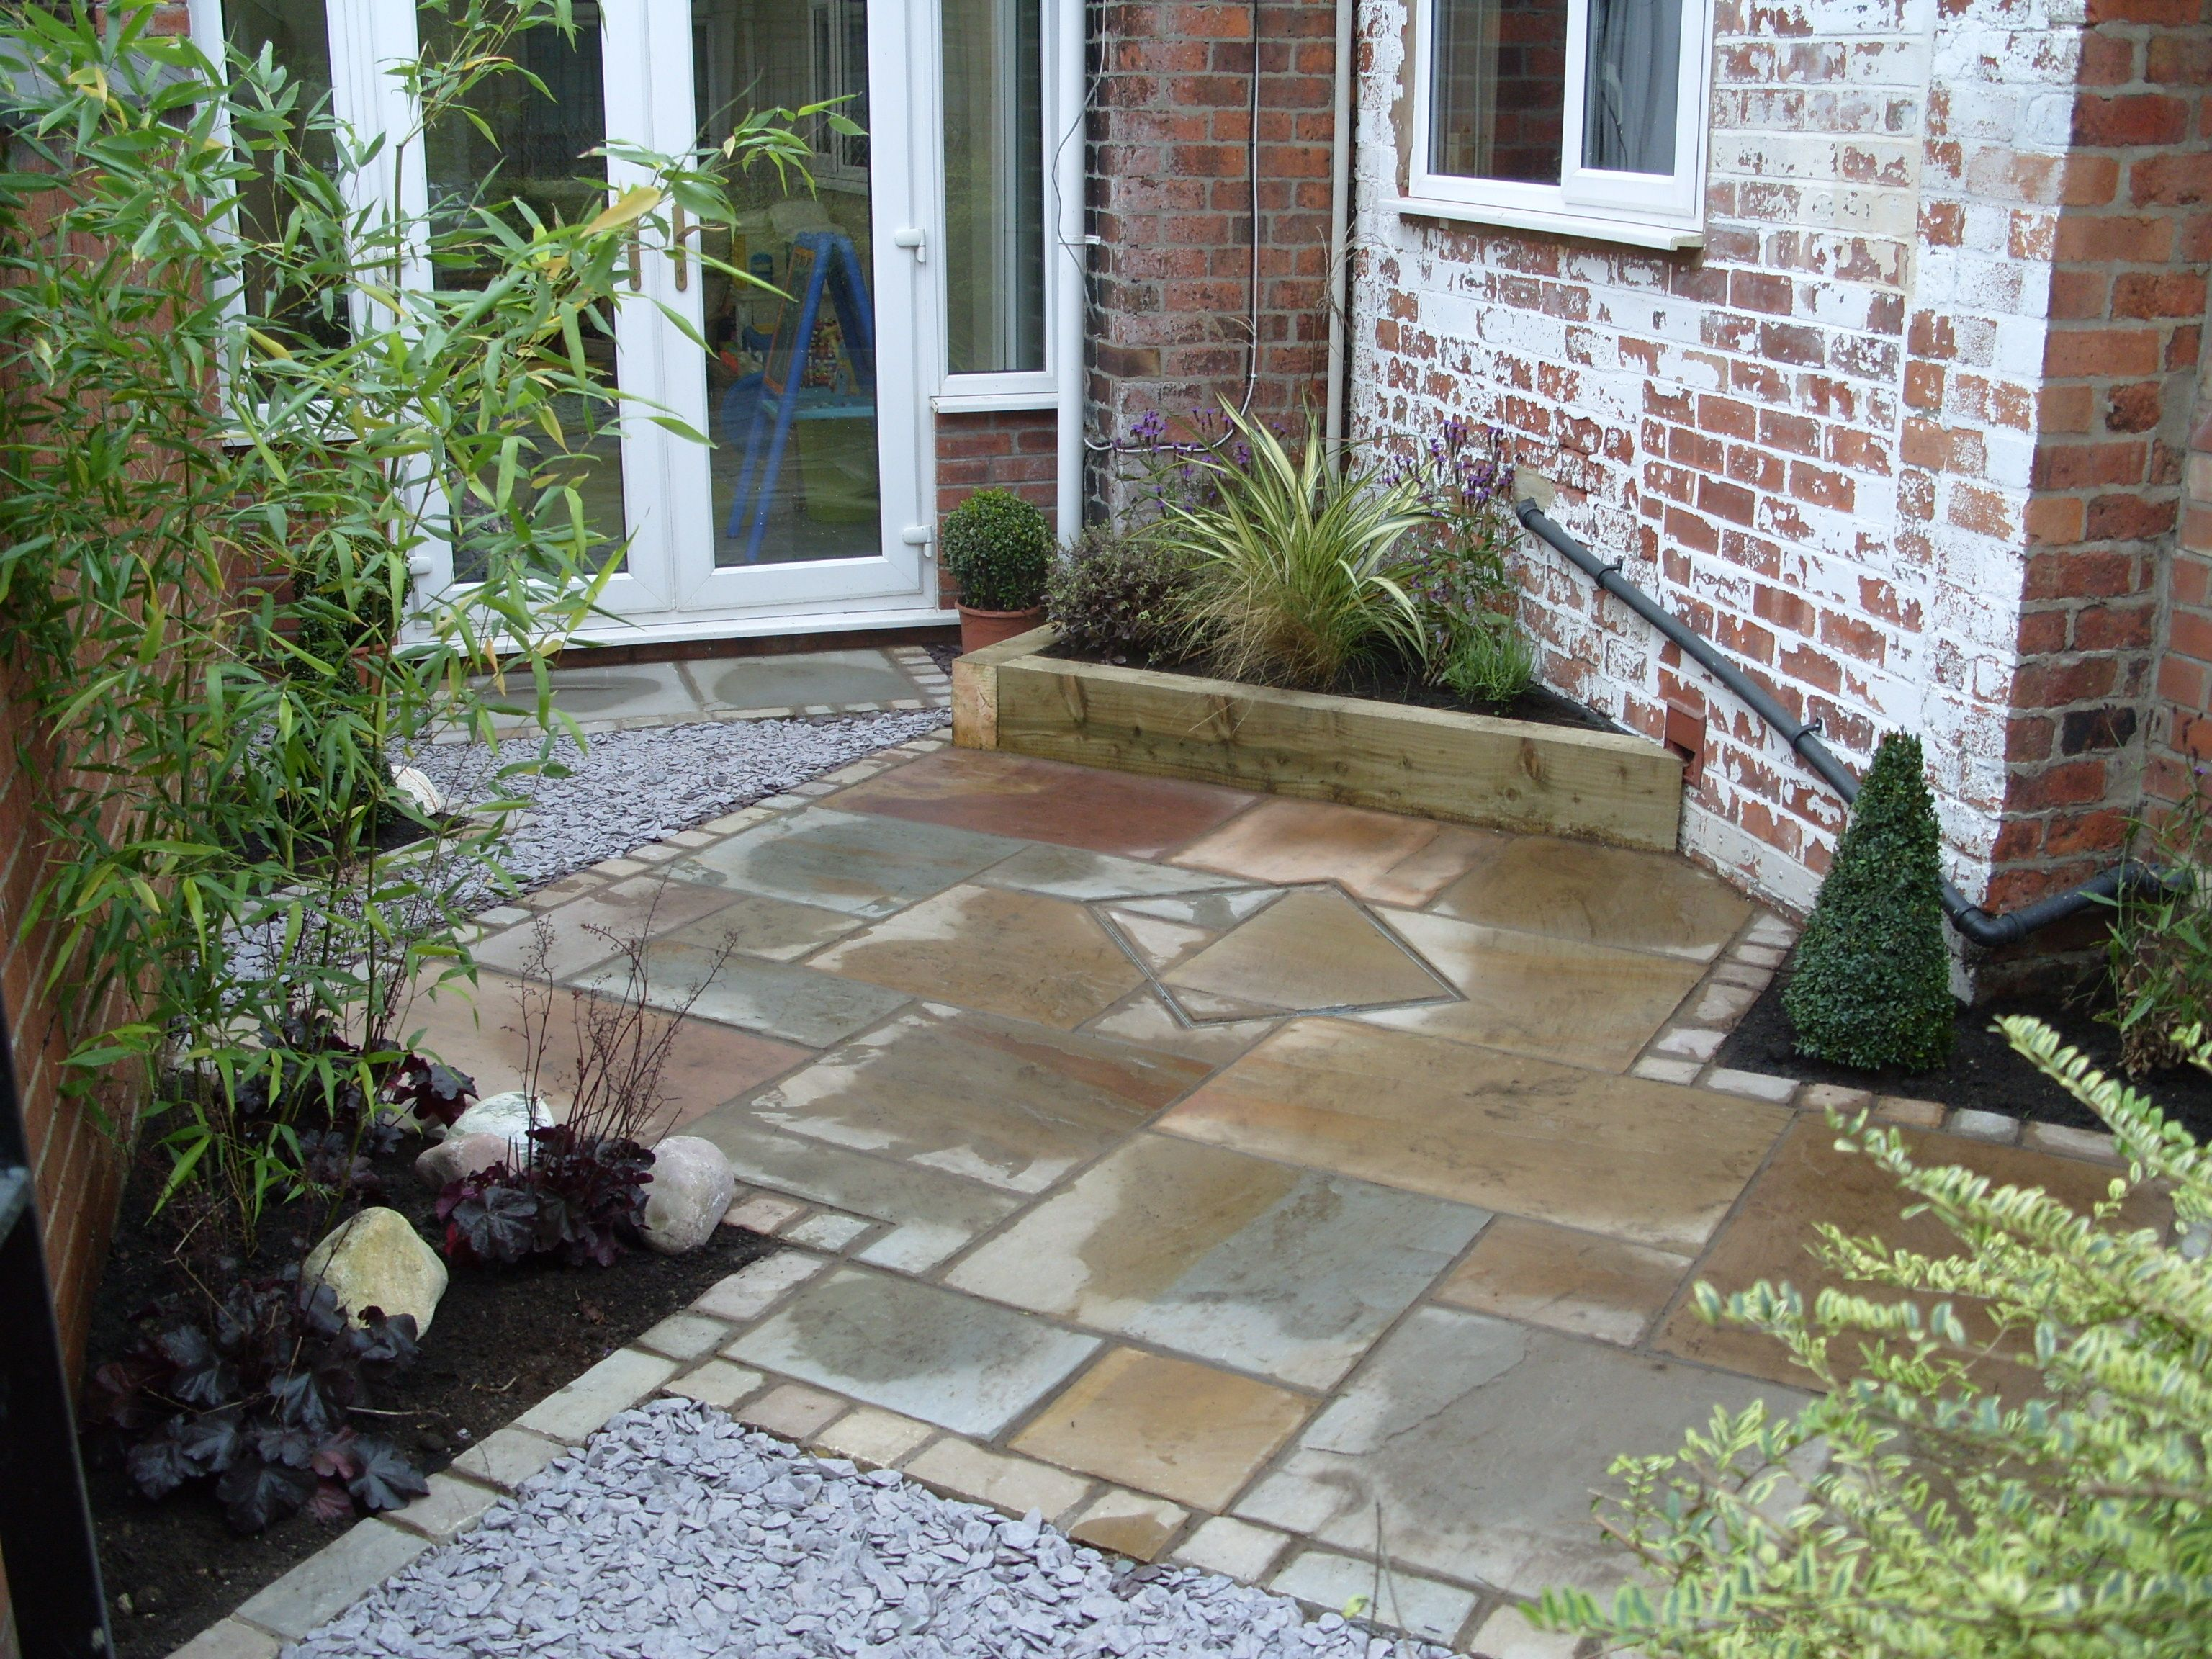 Courtyard garden ideas courtyards angie barker trading as for Small courtyard landscaping ideas